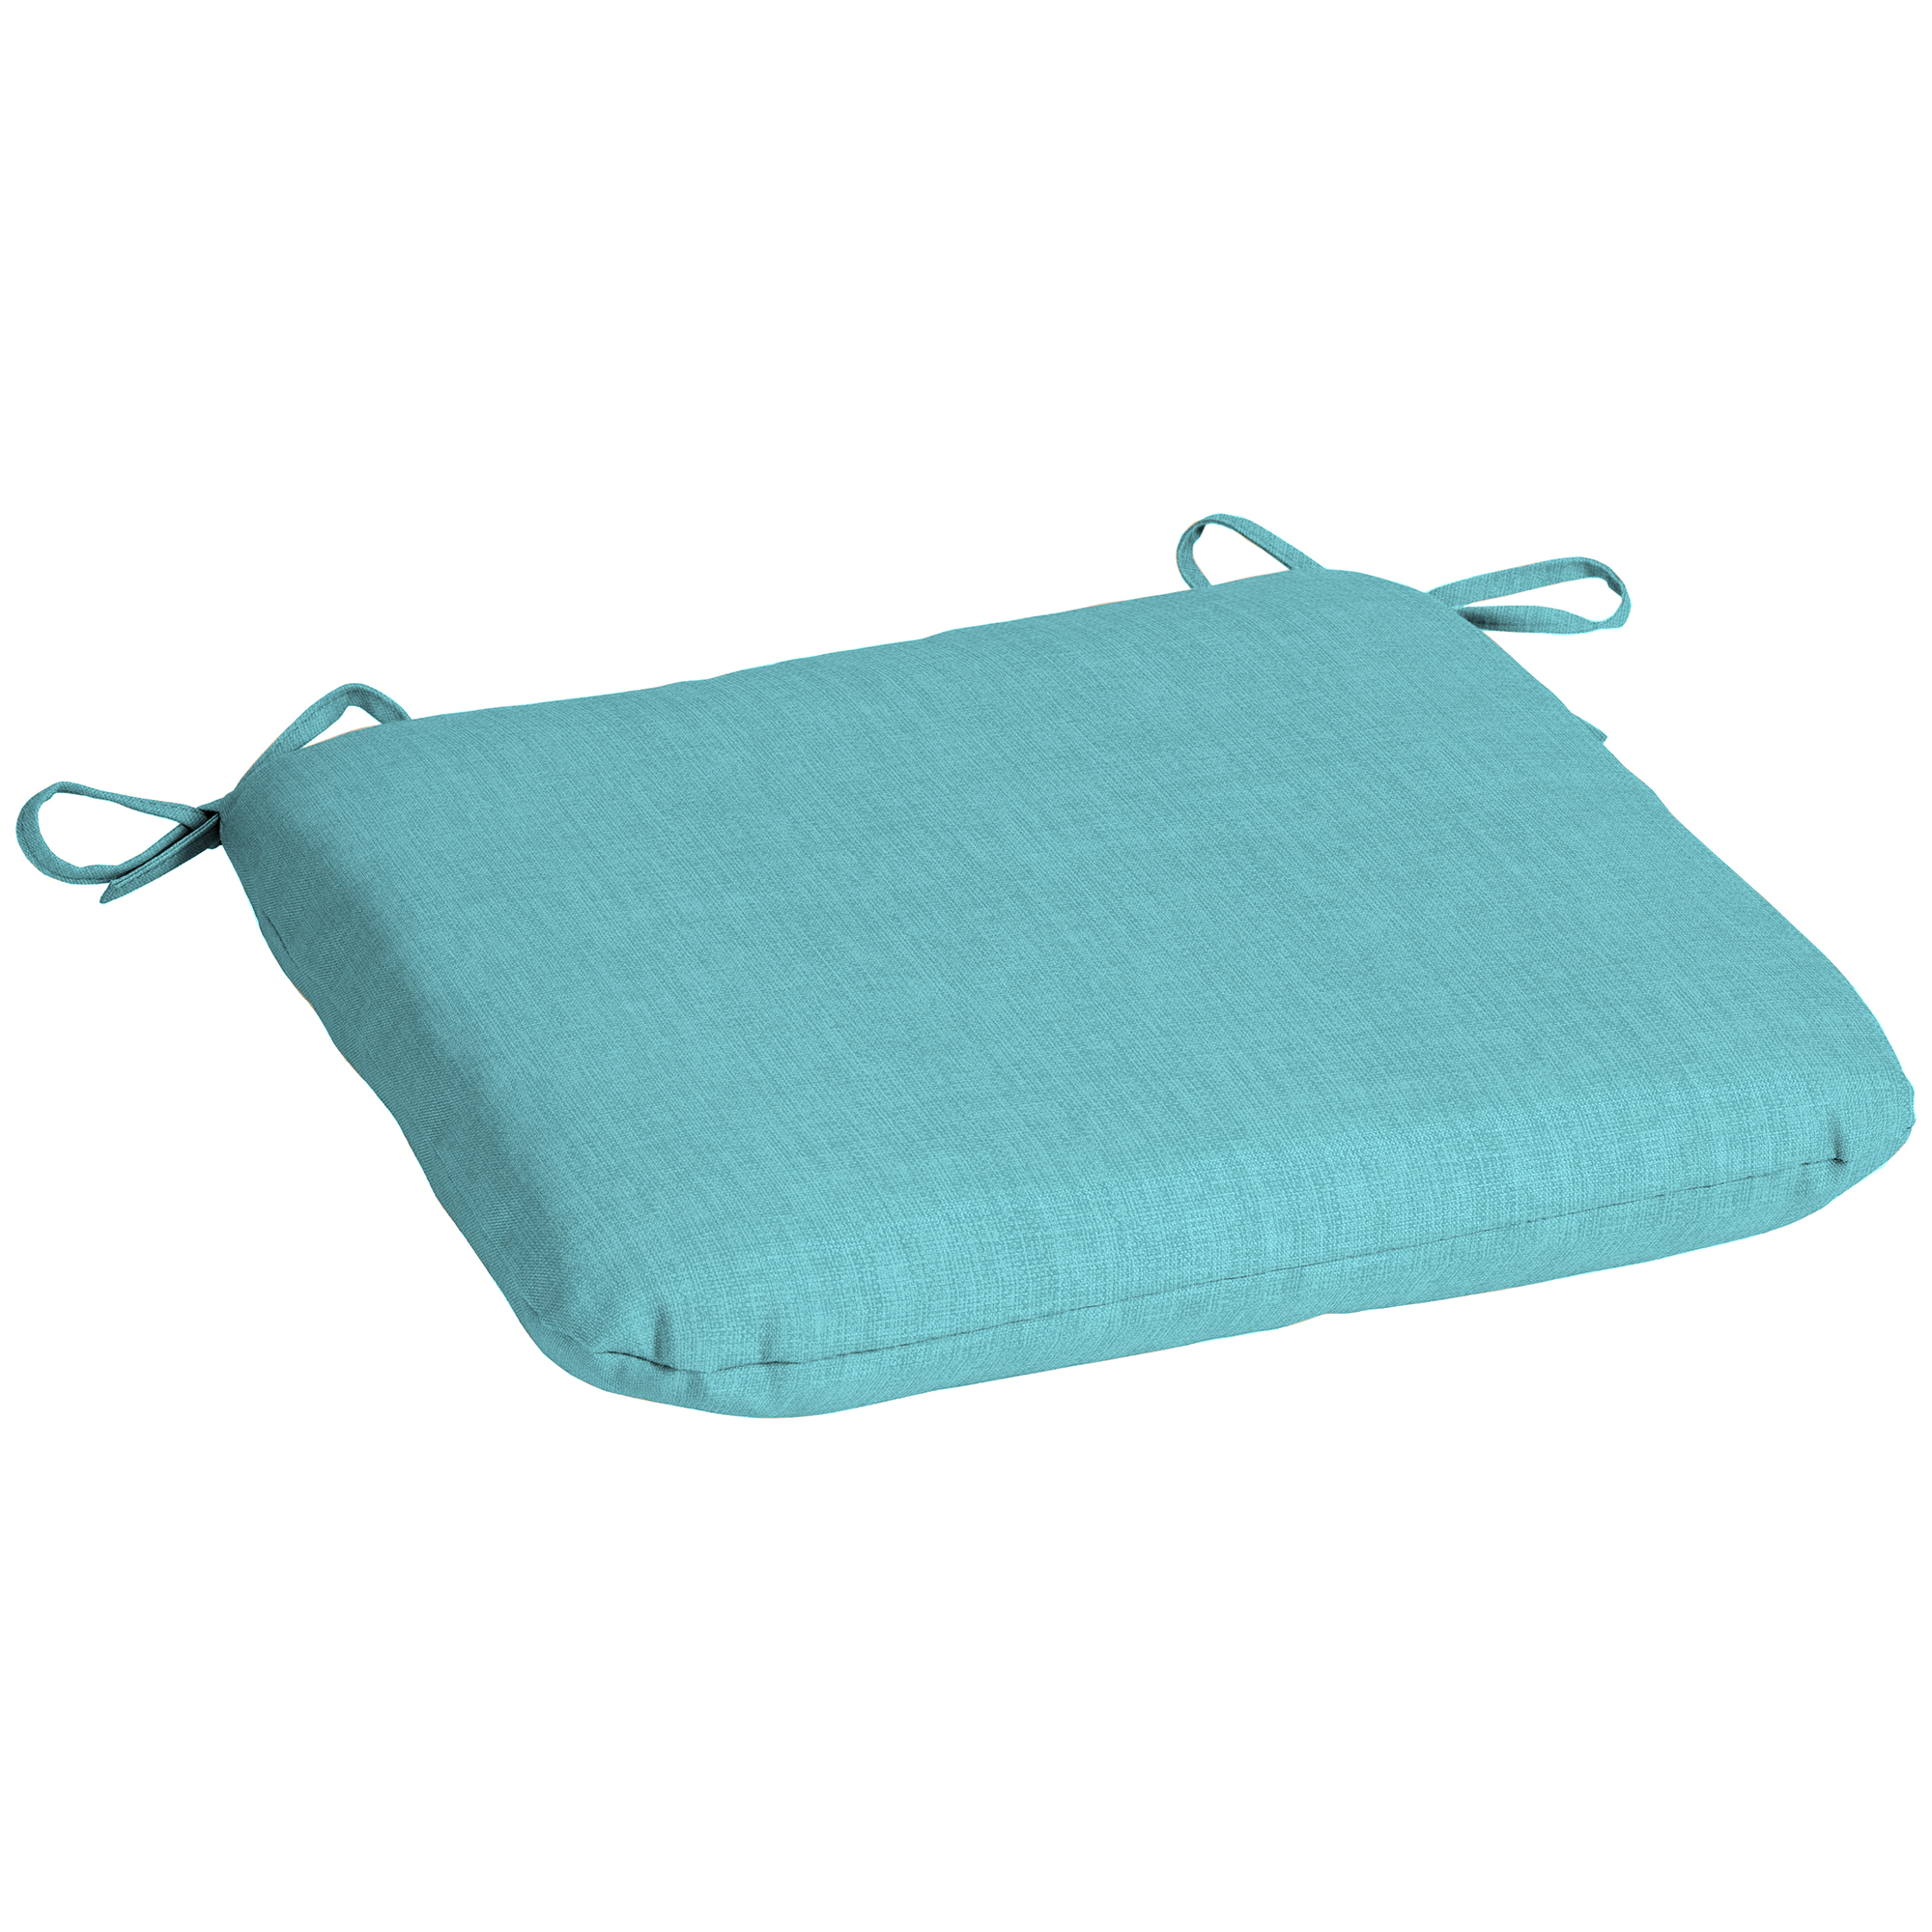 Mainstays Solid Turquoise Outdoor Patio Dining Seat Cushion